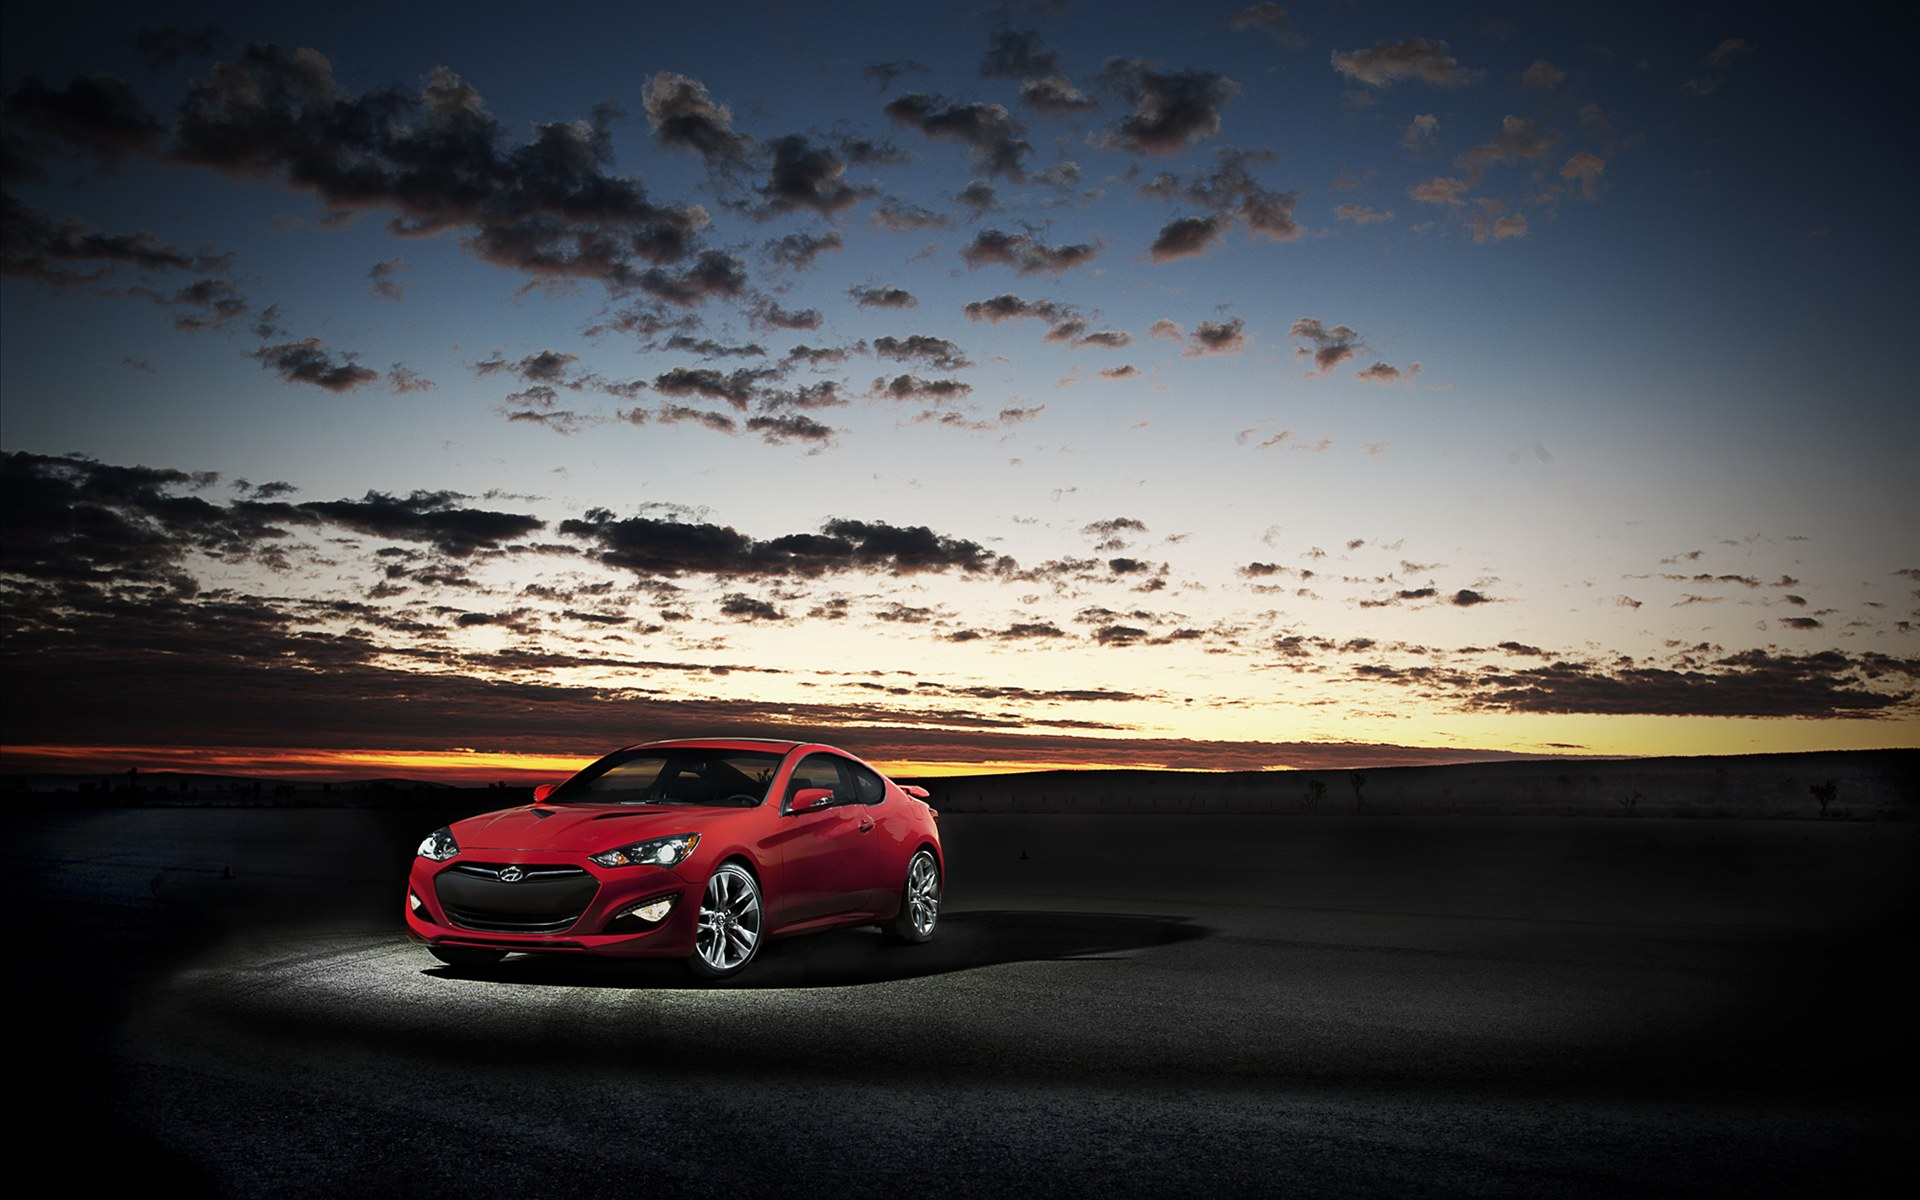 2013 Hyundai Genesis Coupe Wallpaper | HD Car Wallpapers ...